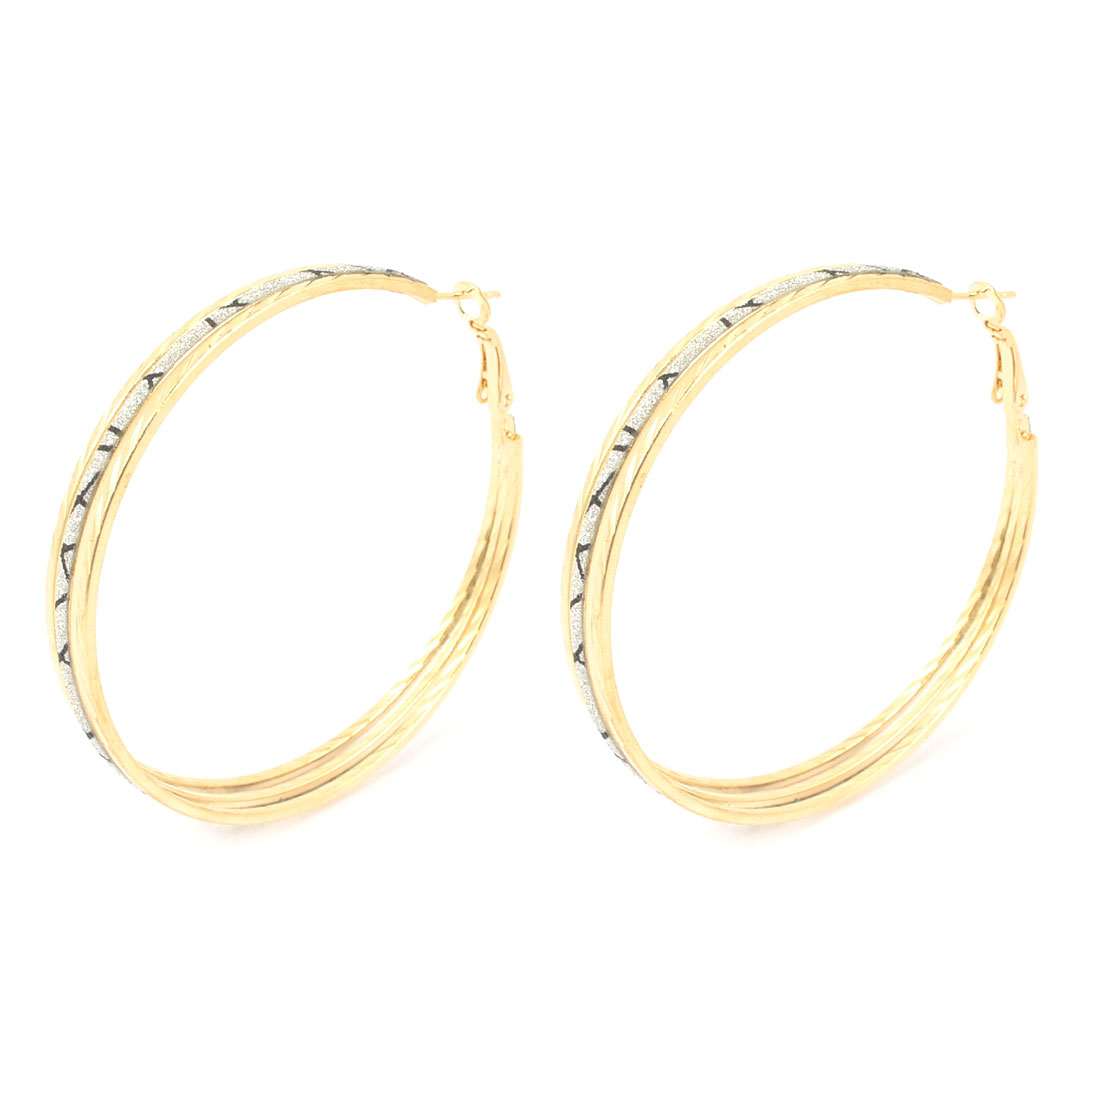 Pair Metal Round Shape Glitter Powder Accent Full Circle Hoop Earrings for Lady